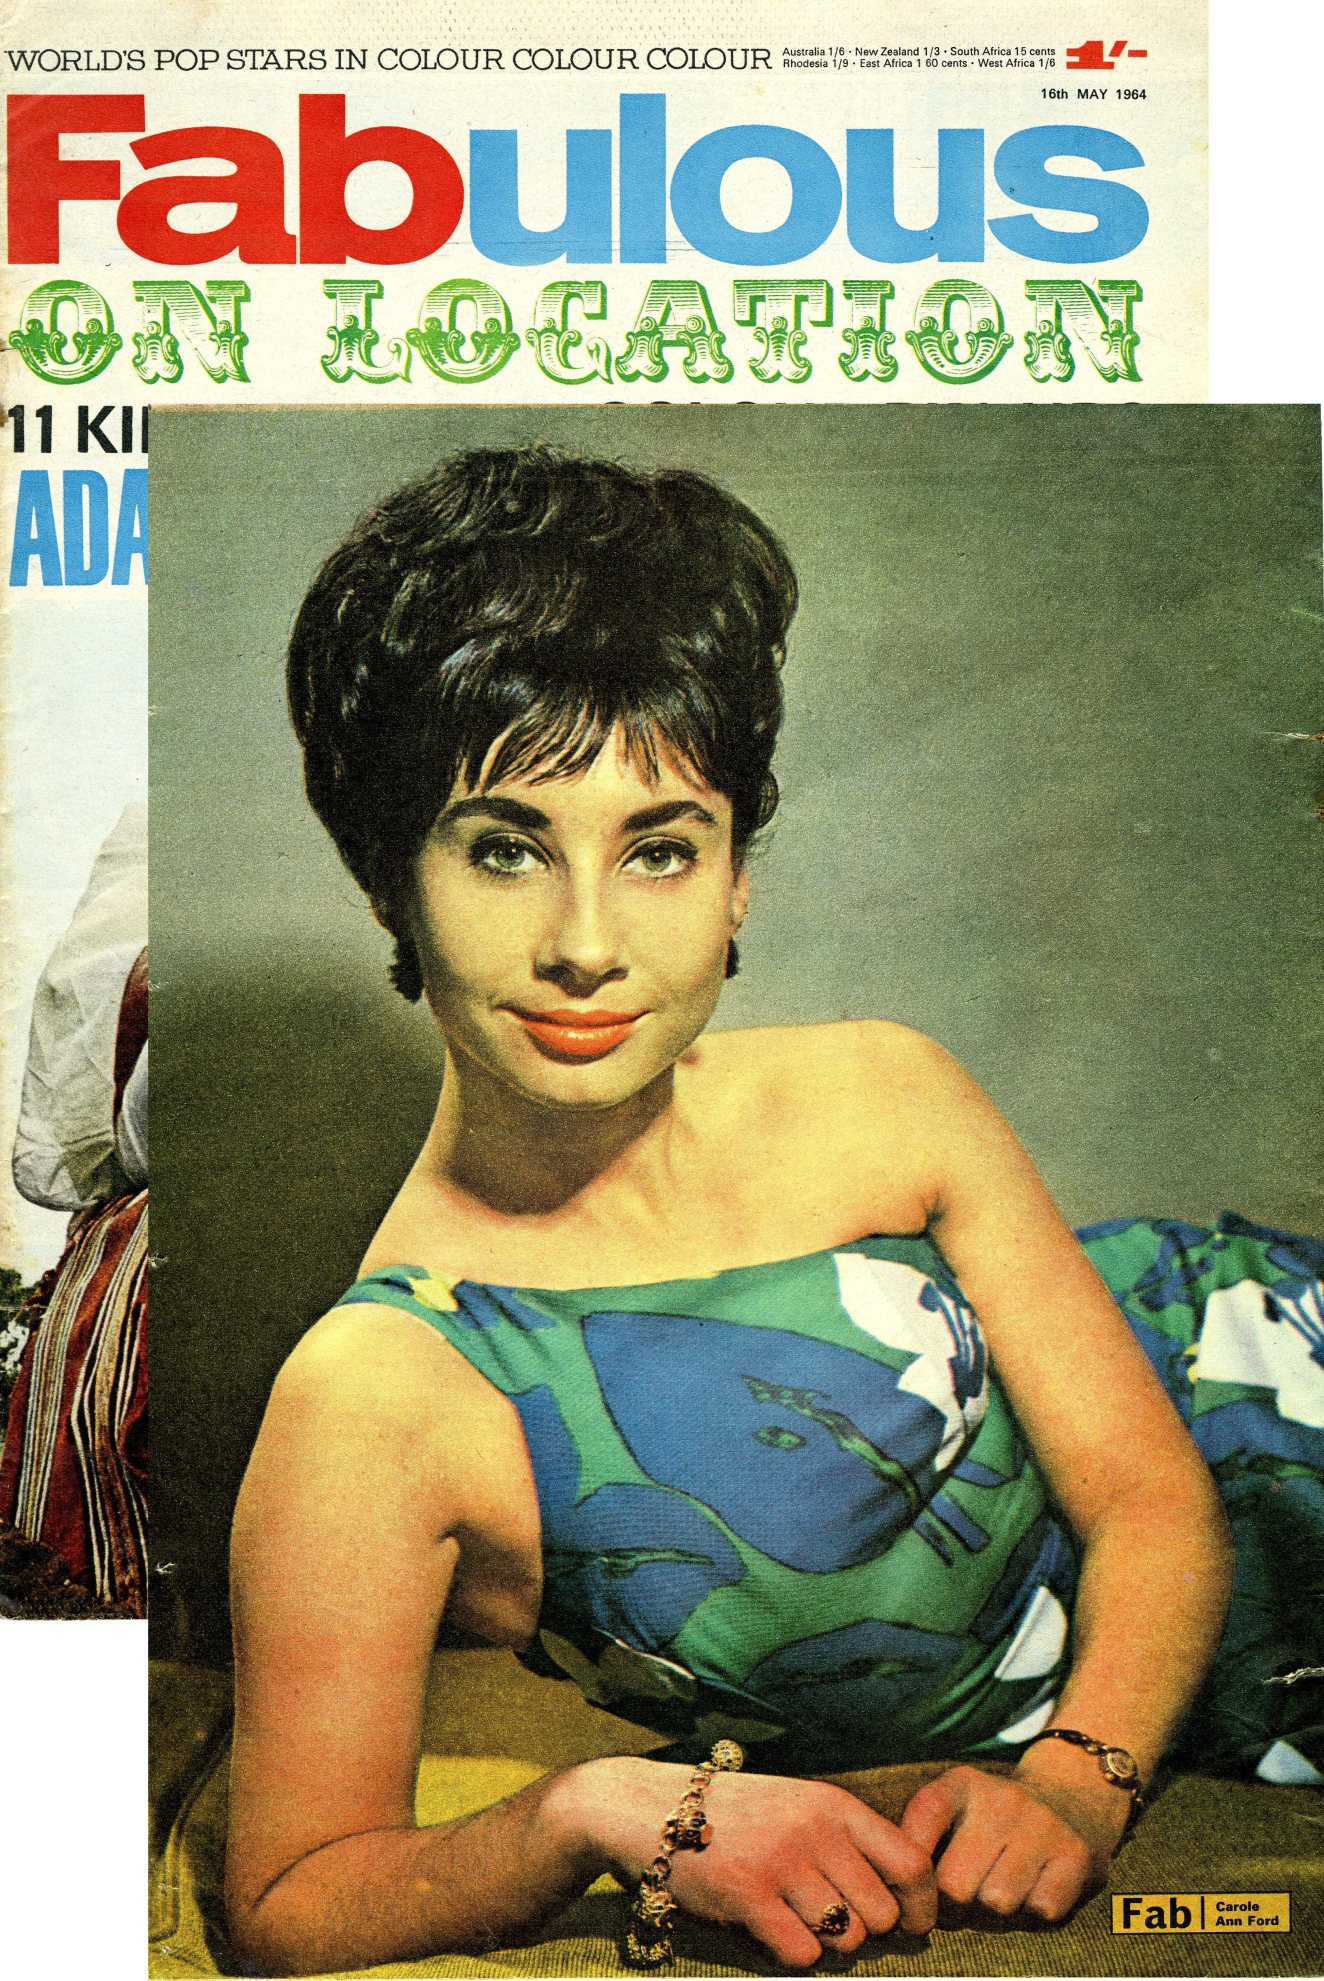 Fabulous, 16 May 1964 with Carole Ann Ford poster